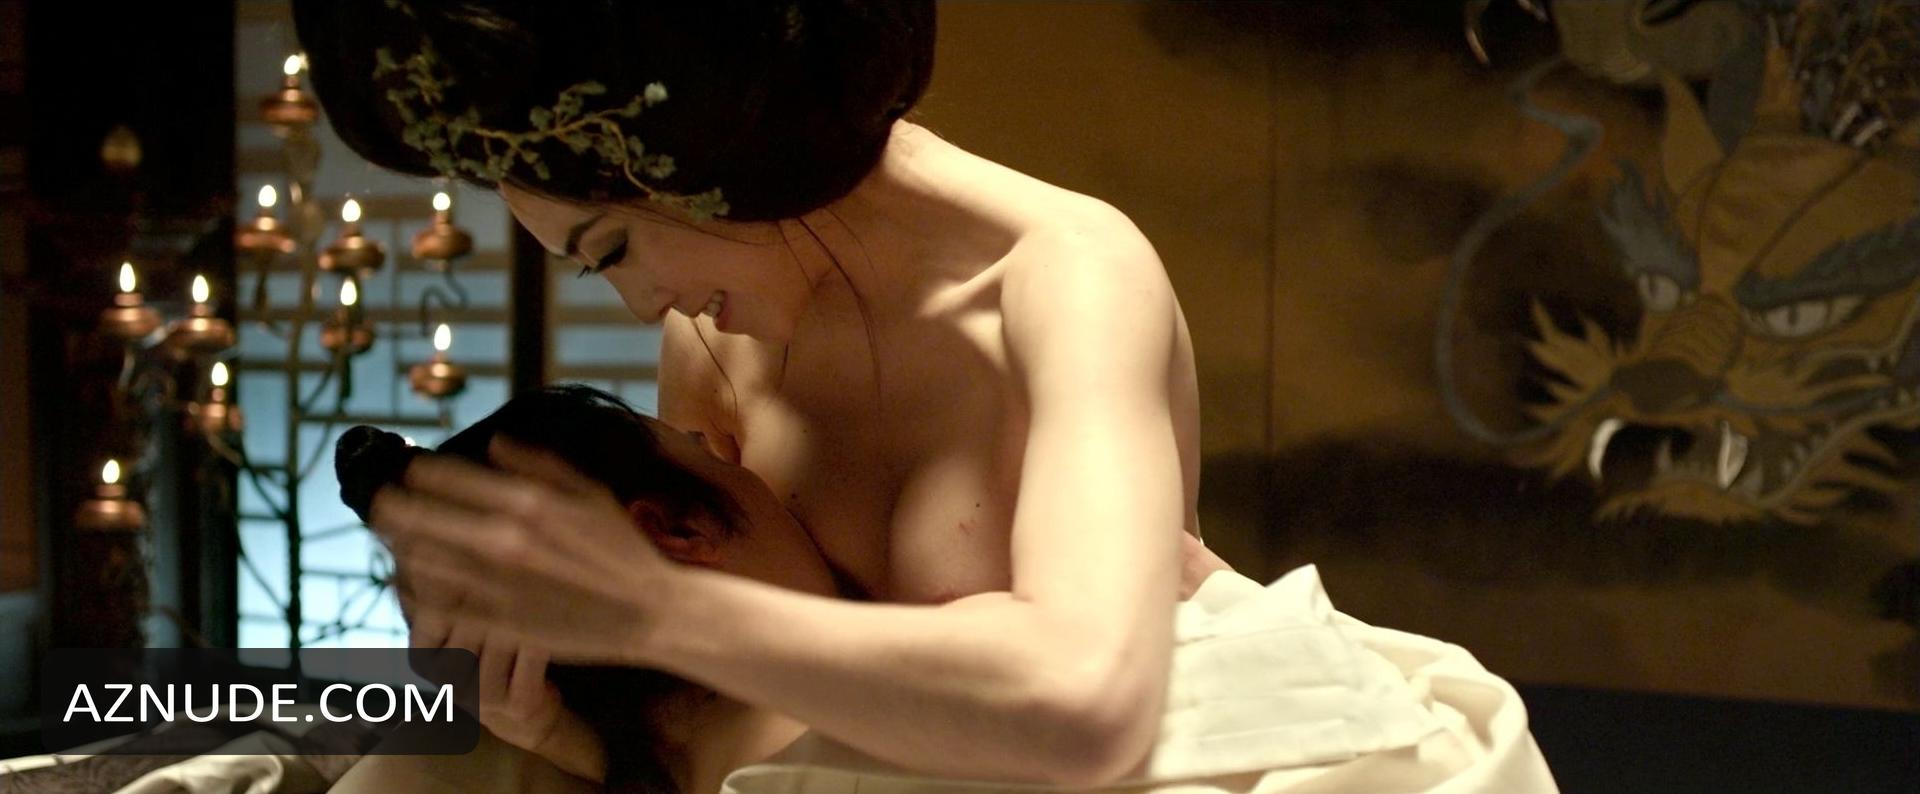 Lim jiyeon and lee yooyoung the treacherous - 1 part 10